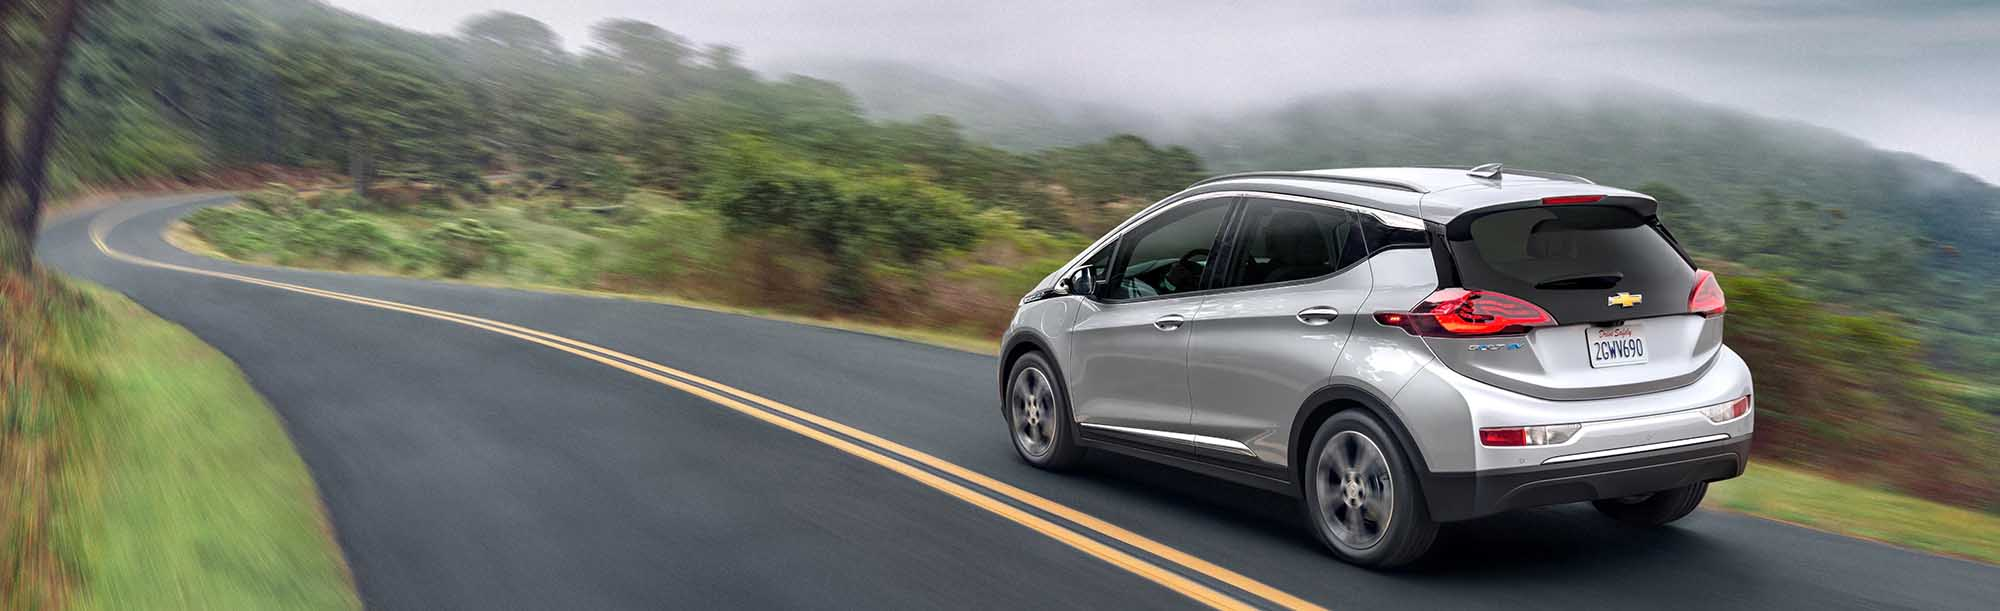 Experience The Electric 2020 Chevy Bolt EV In Costa Mesa, California